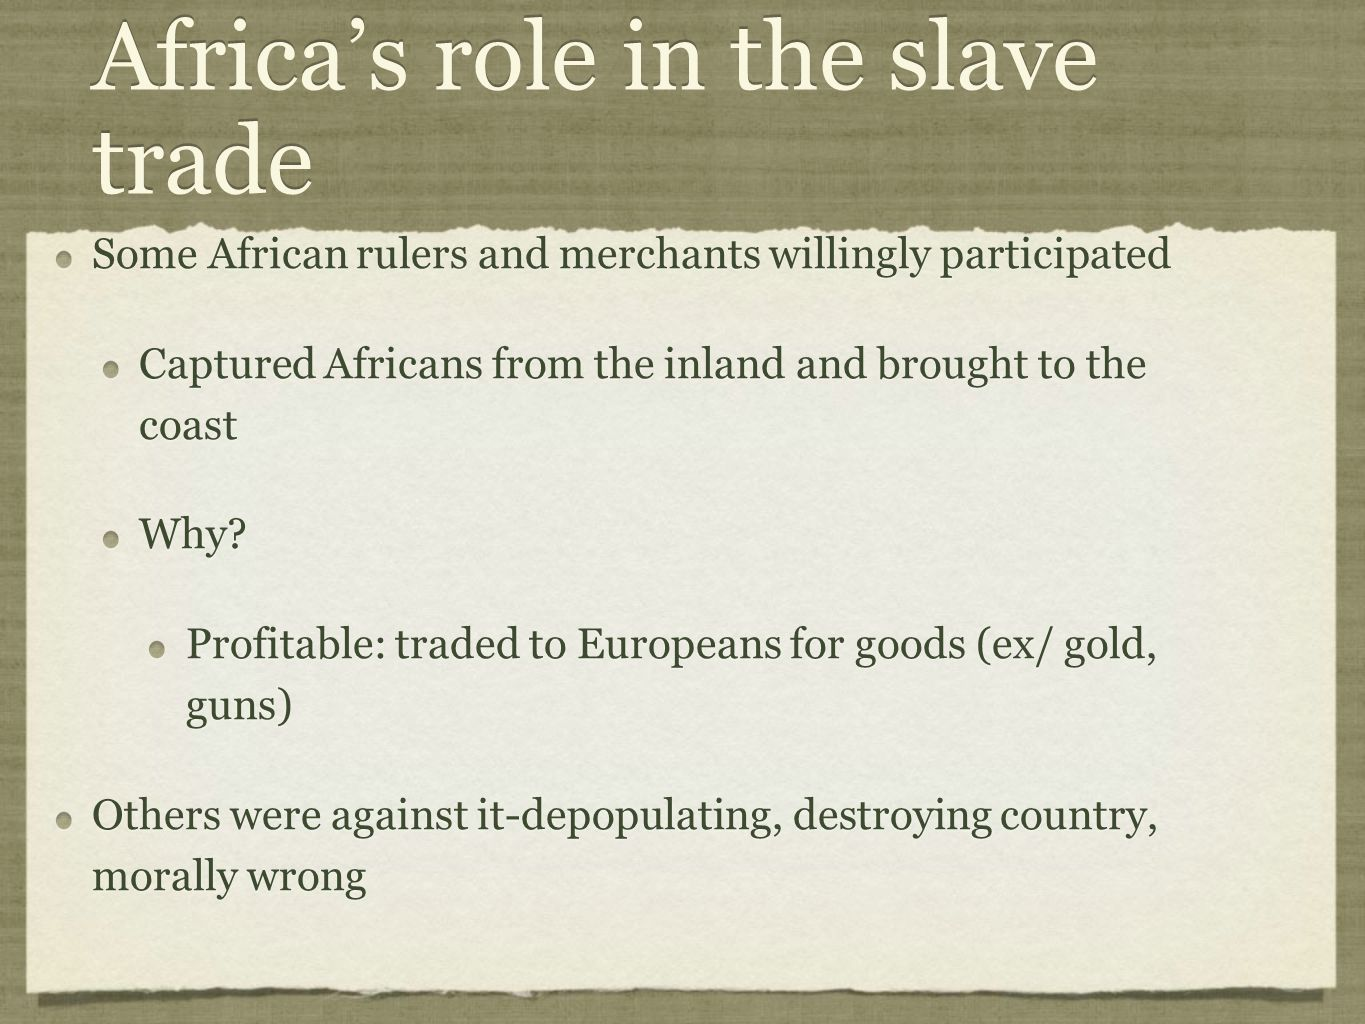 Africa's role in the slave trade